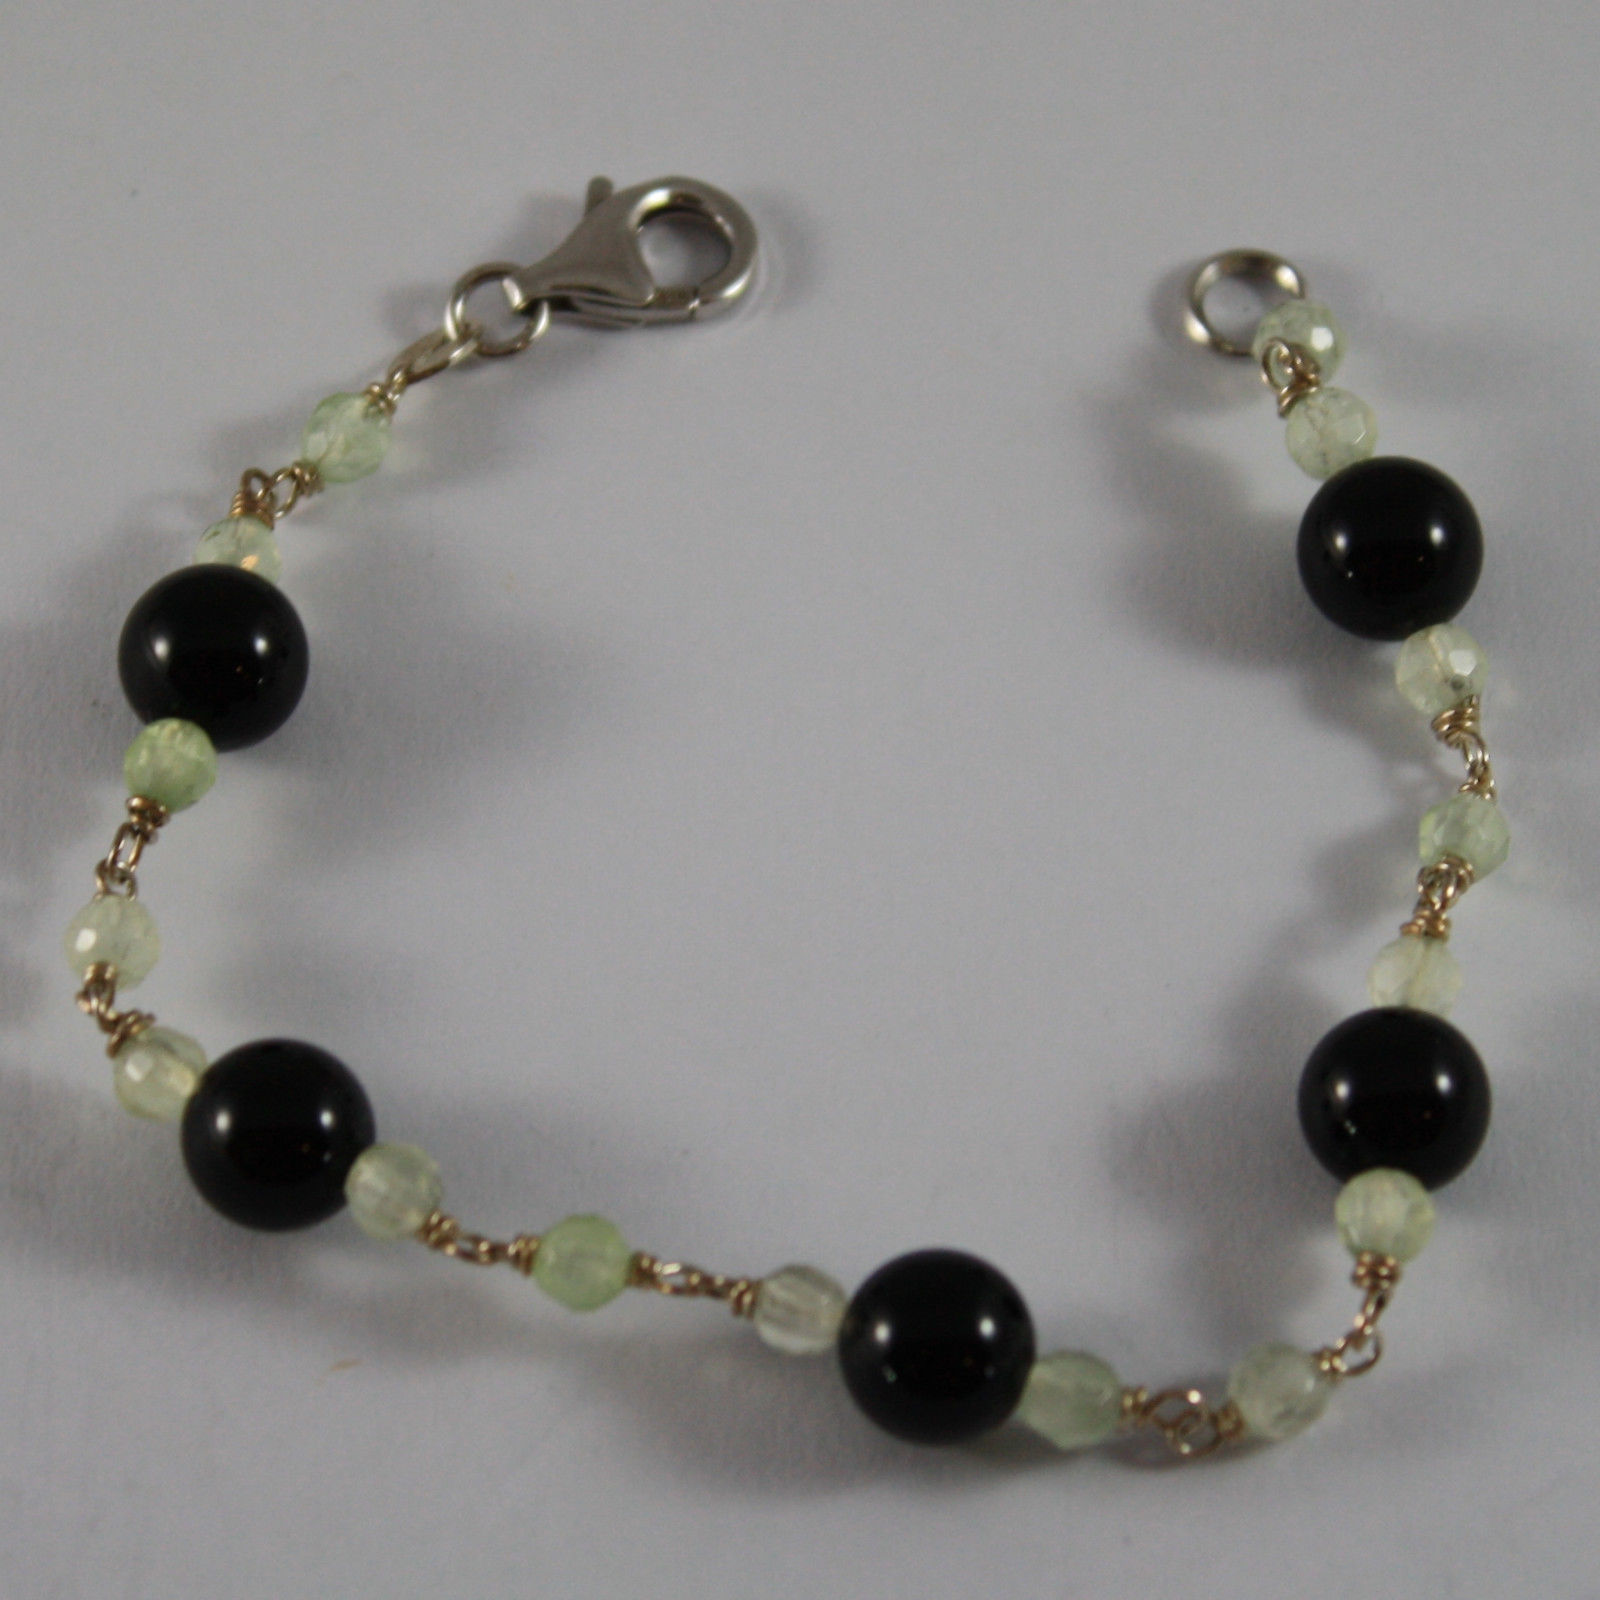 .925 RHODIUM SILVER BRACELET WITH BLACK ONYX AND GREEN JADE